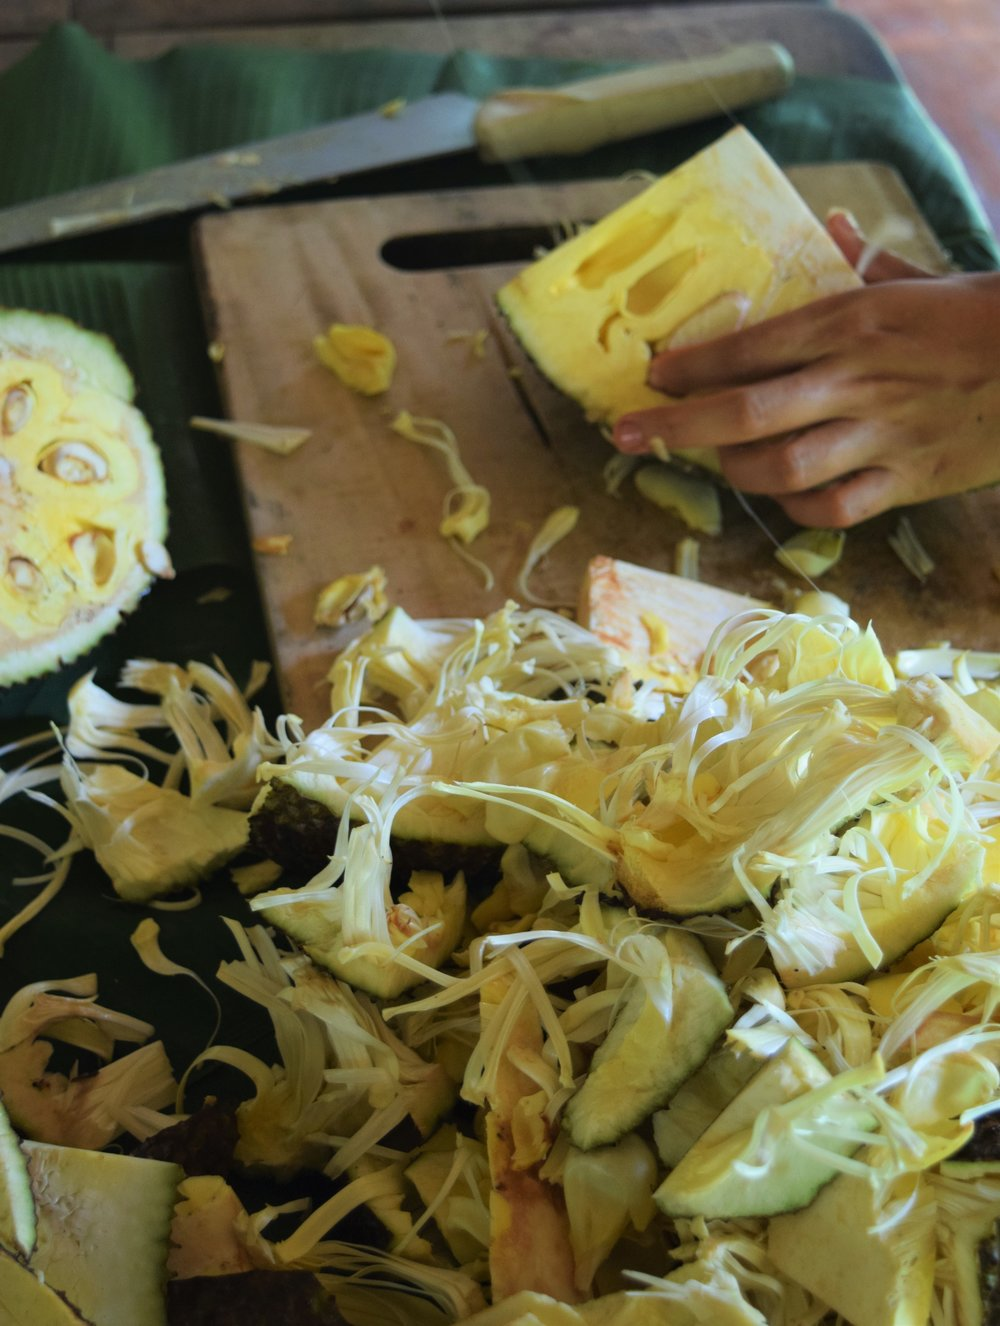 jackfruit processing